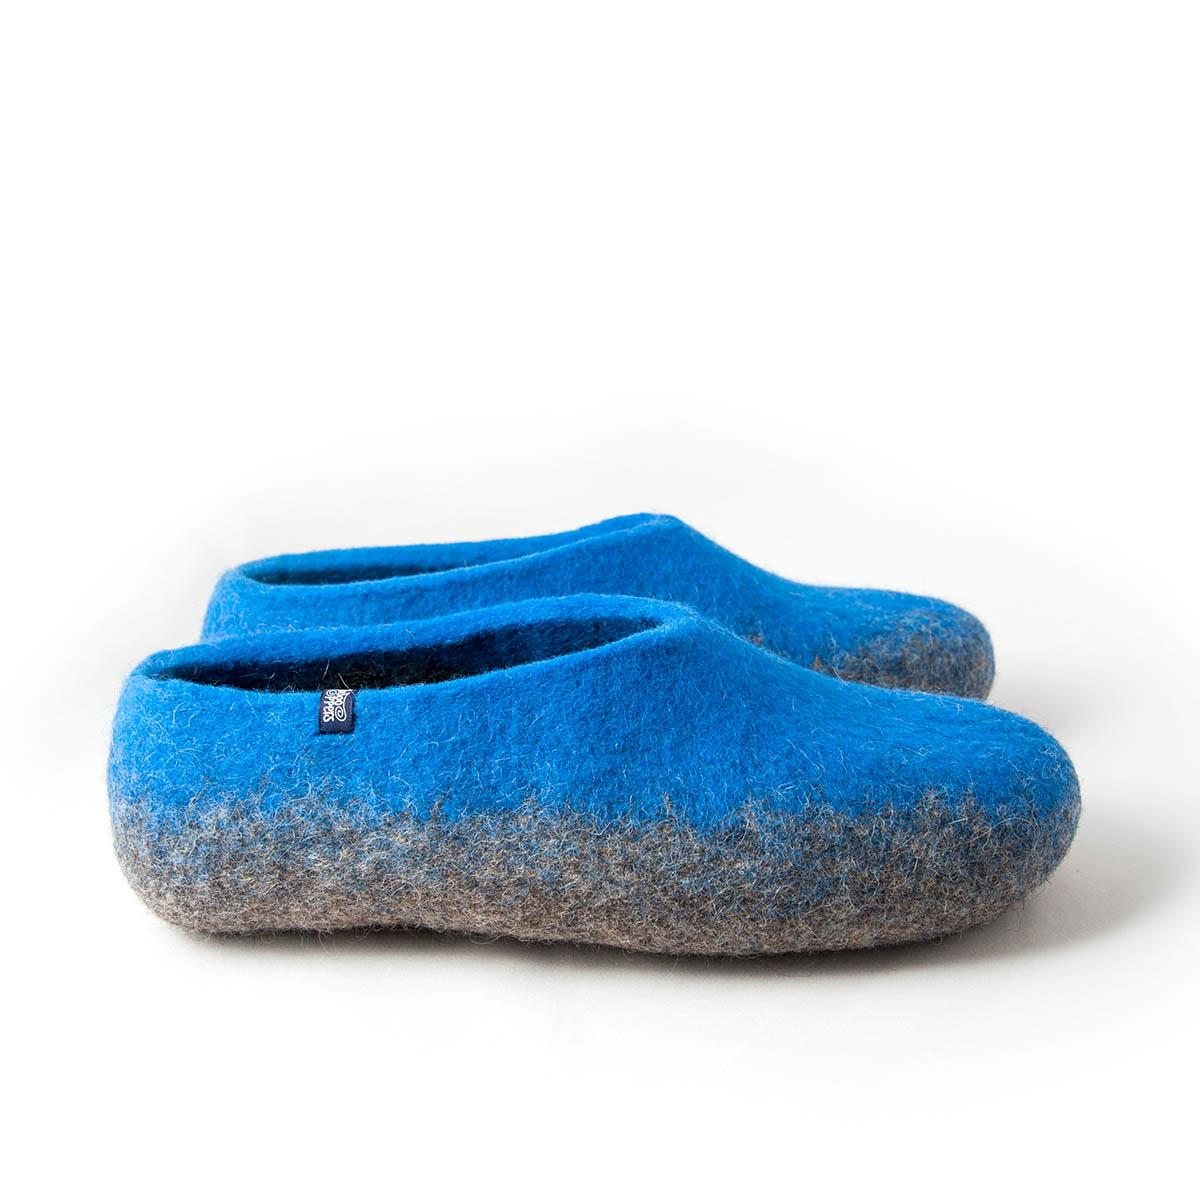 6315f4d262fb5 Mens comfortable slippers TOPS blue and grey by Wooppers